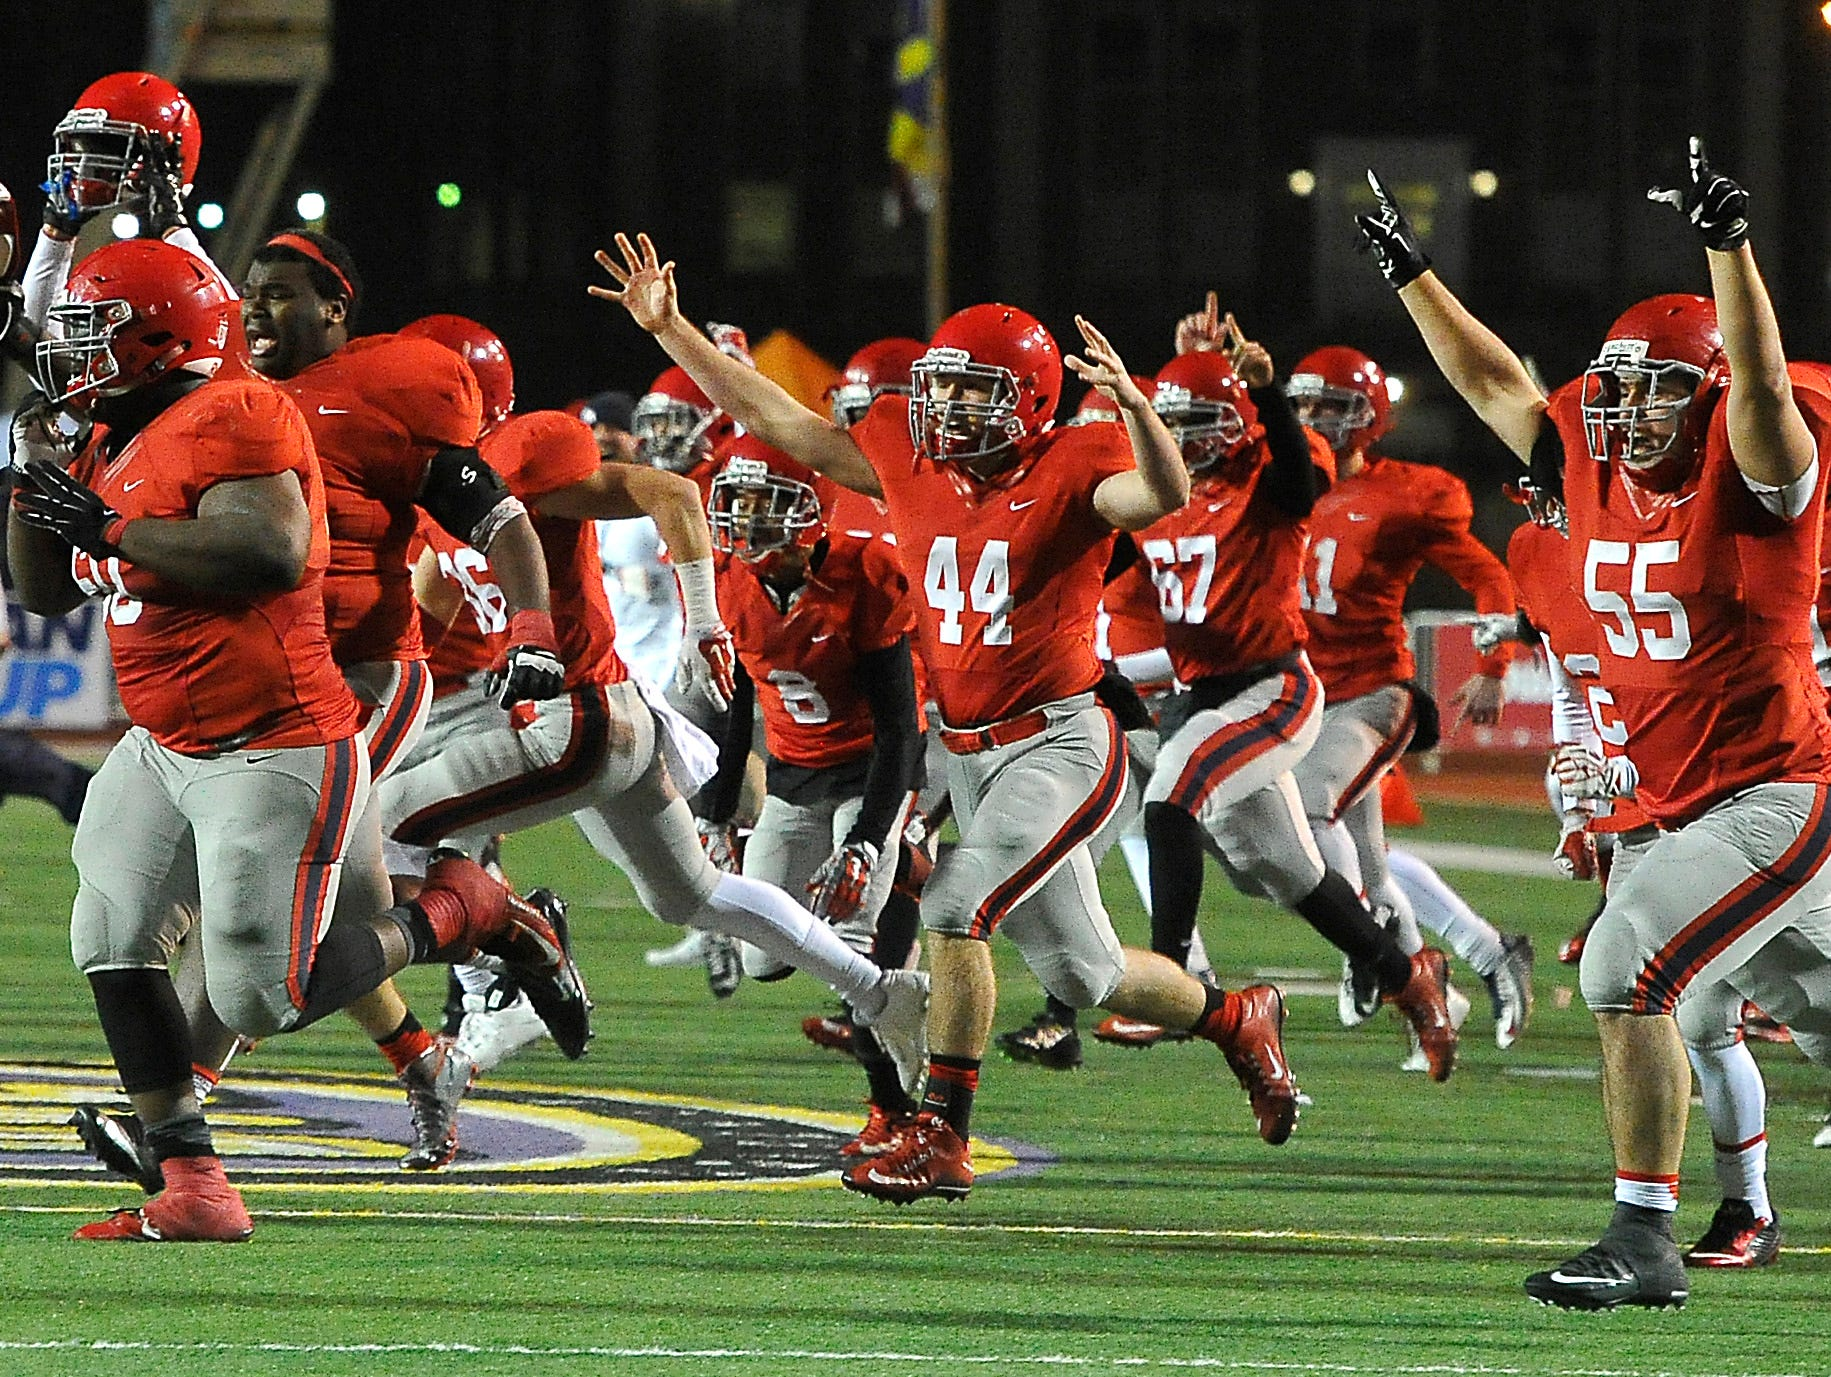 Brentwood Academy celebrates its double-overtime win over Montgomery Bell Academy 56-55 in the BlueCross Bowl DII-AA state title game on Dec. 3, 2015, in Cookeville.